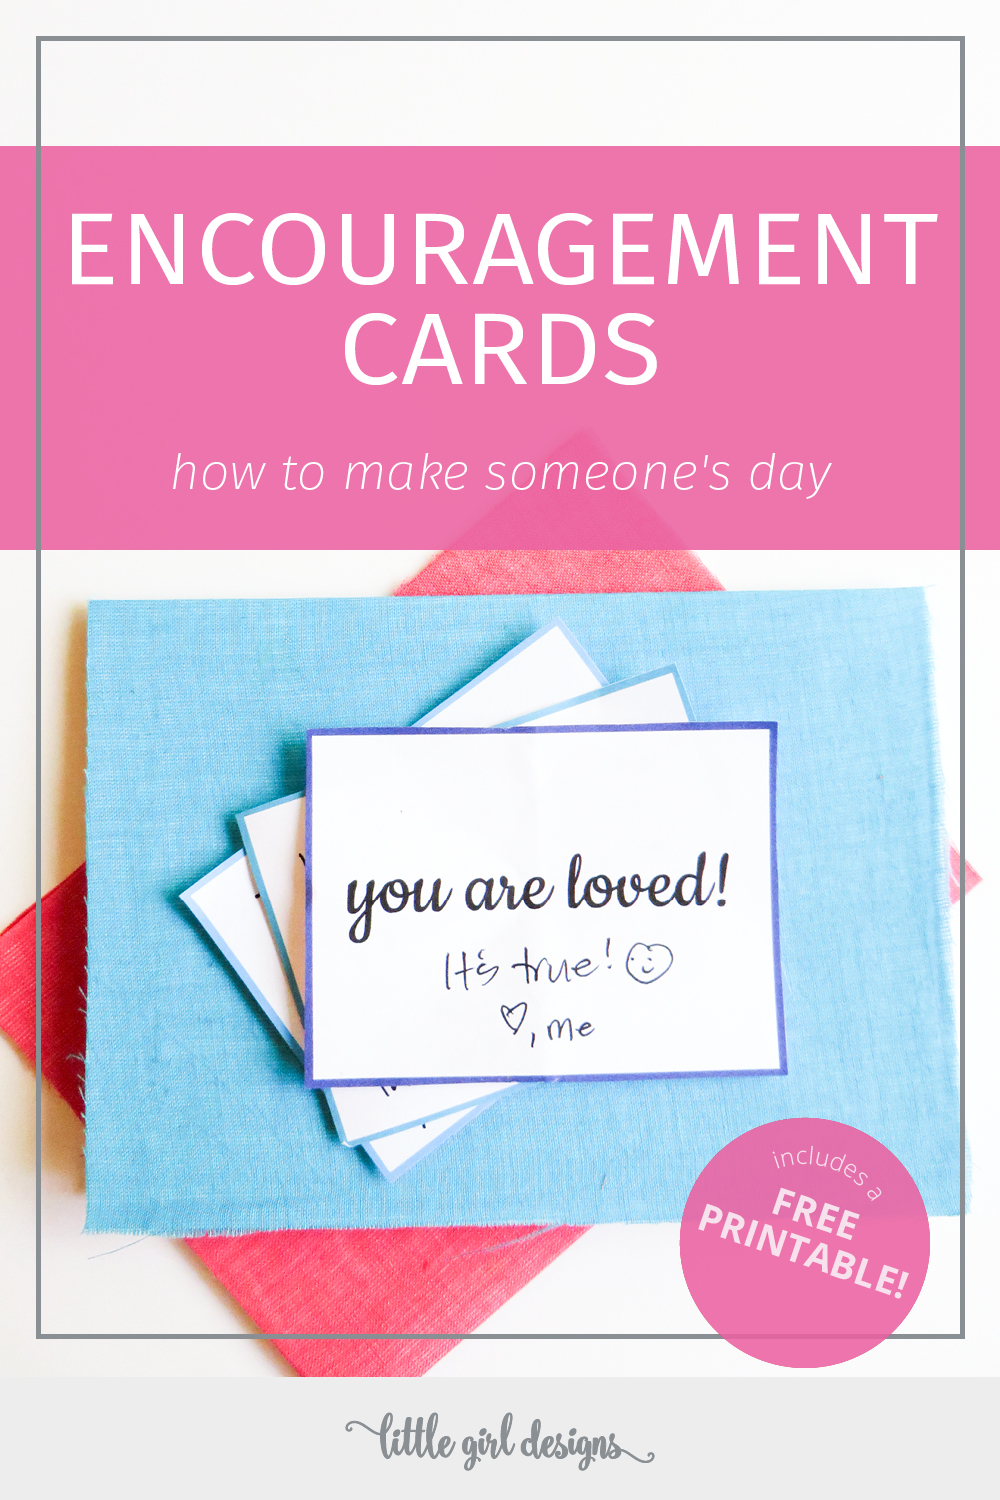 Encouragement Cards (Includes a Free Printable!) - a simple handmade gift for Valentine's or just because! I love tucking these into my husband's bag when he travels, and they also make great lunchbox notes.